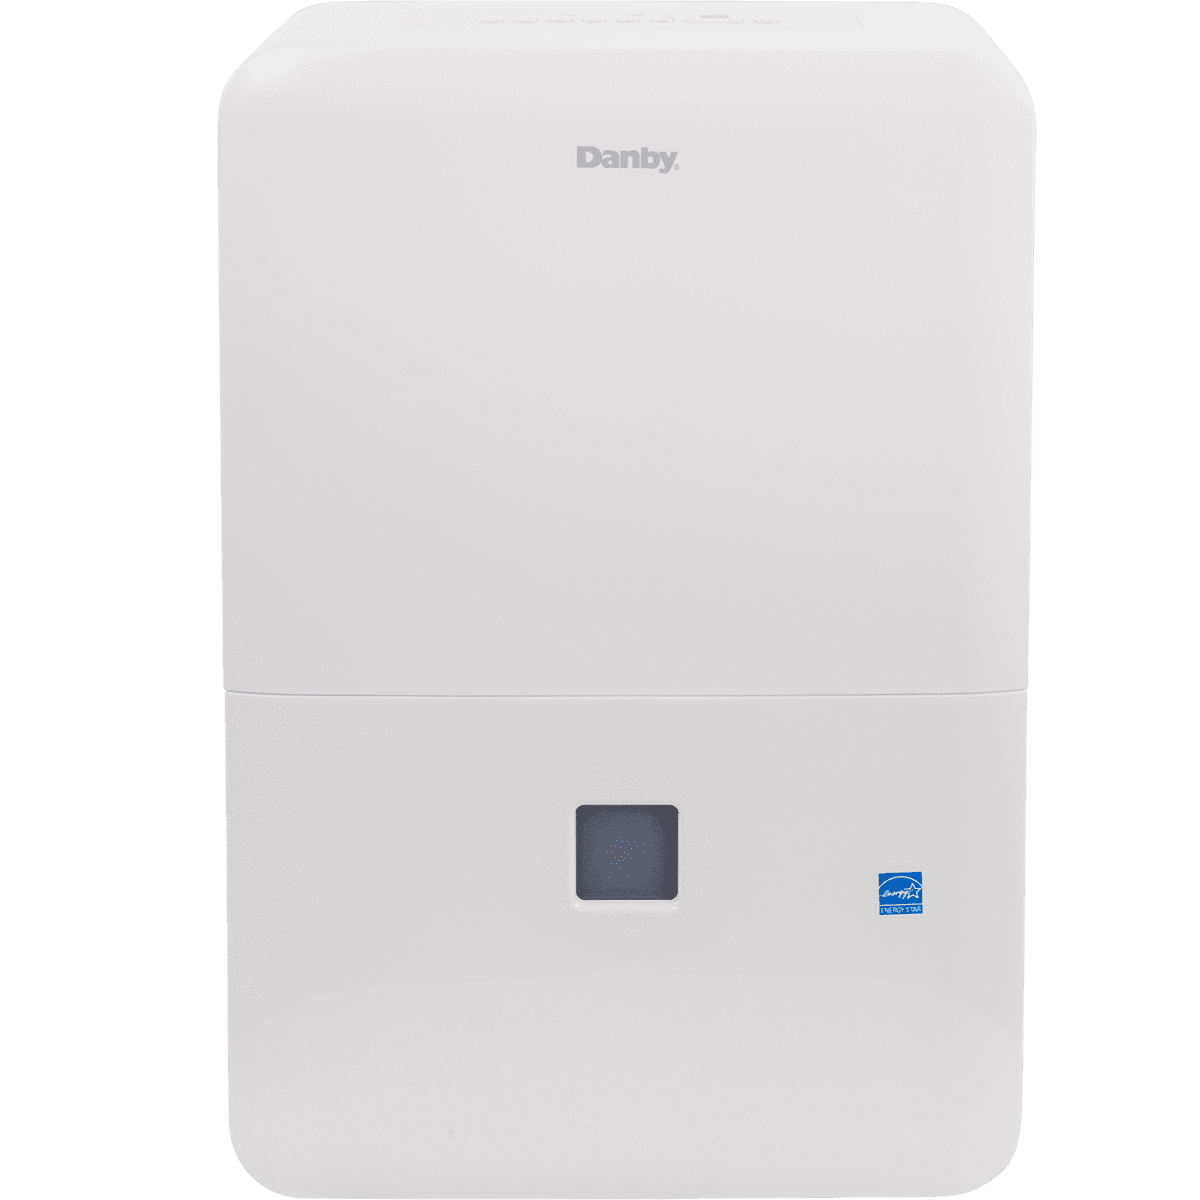 Danby DDR070BDPWDB 70-Pint Dehumidifier with Pump : dehumidifiers with pumps for basements  - Aeropaca.Org